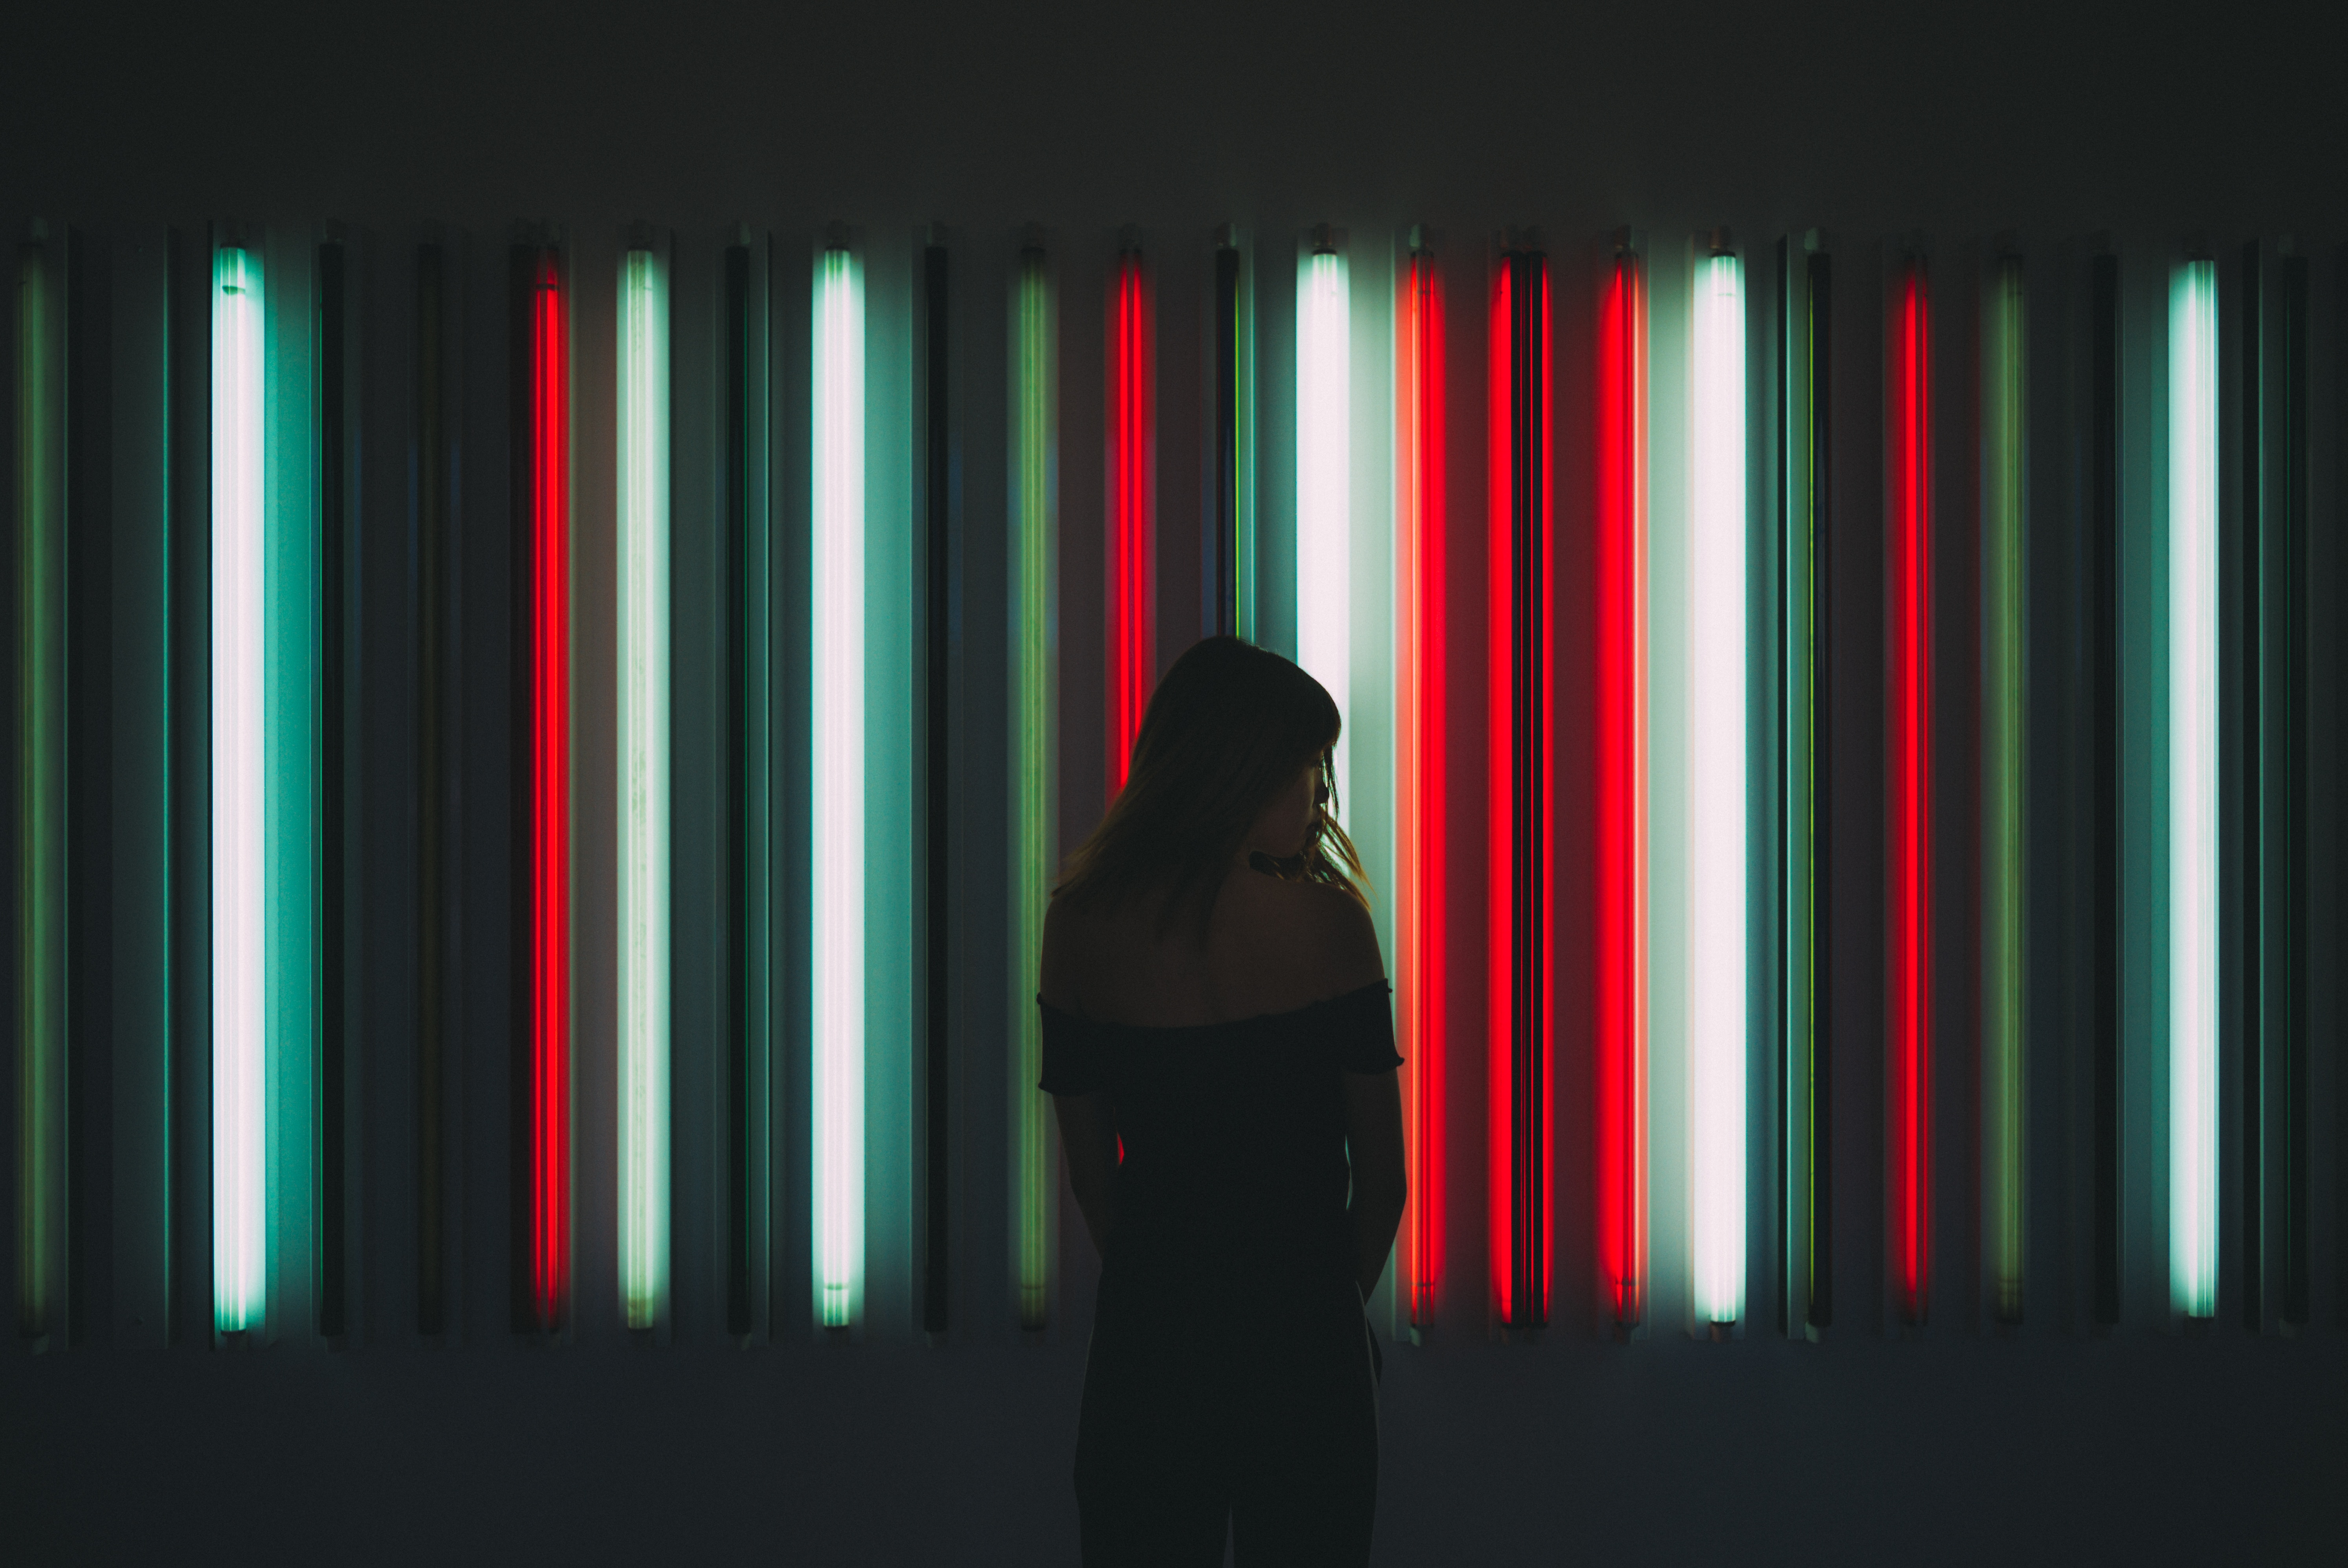 Silhouette of a person standing in front of wall of different colored light bars.